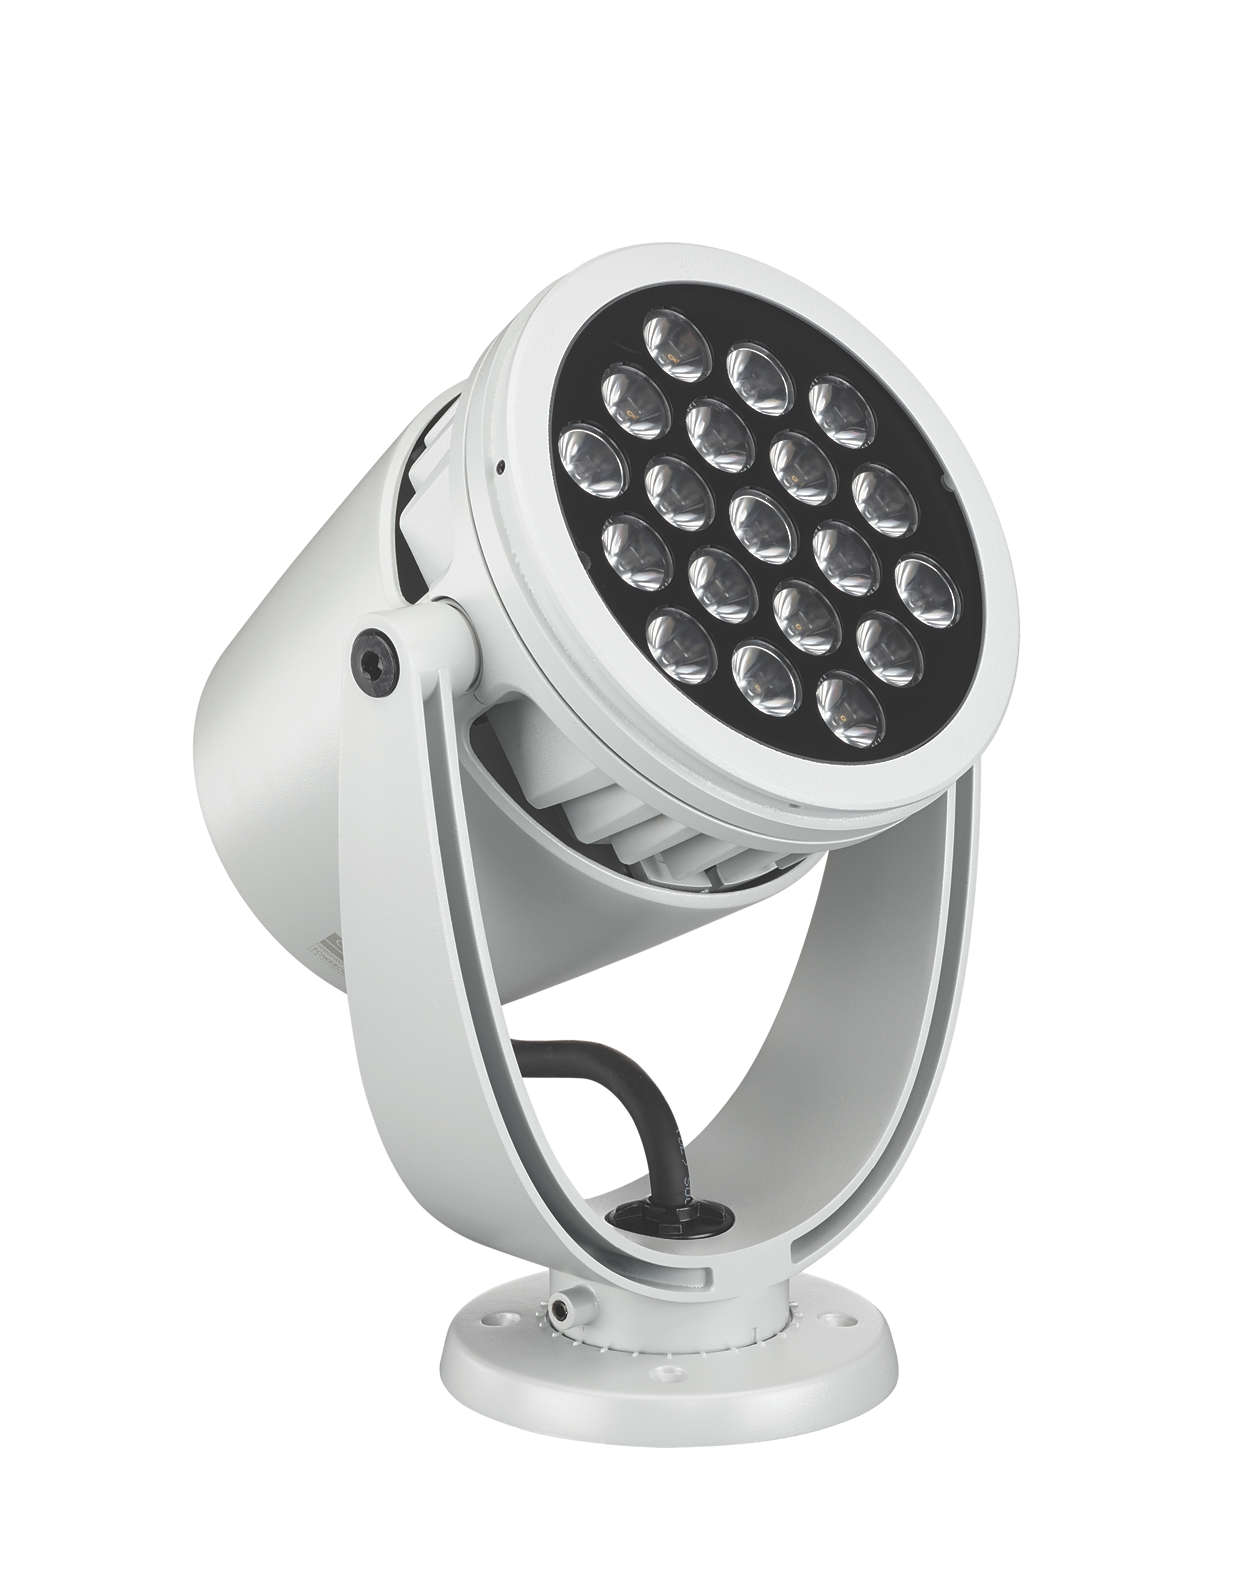 Exterior architectural and landscape spotlight with intelligent RGBA or RGBW light